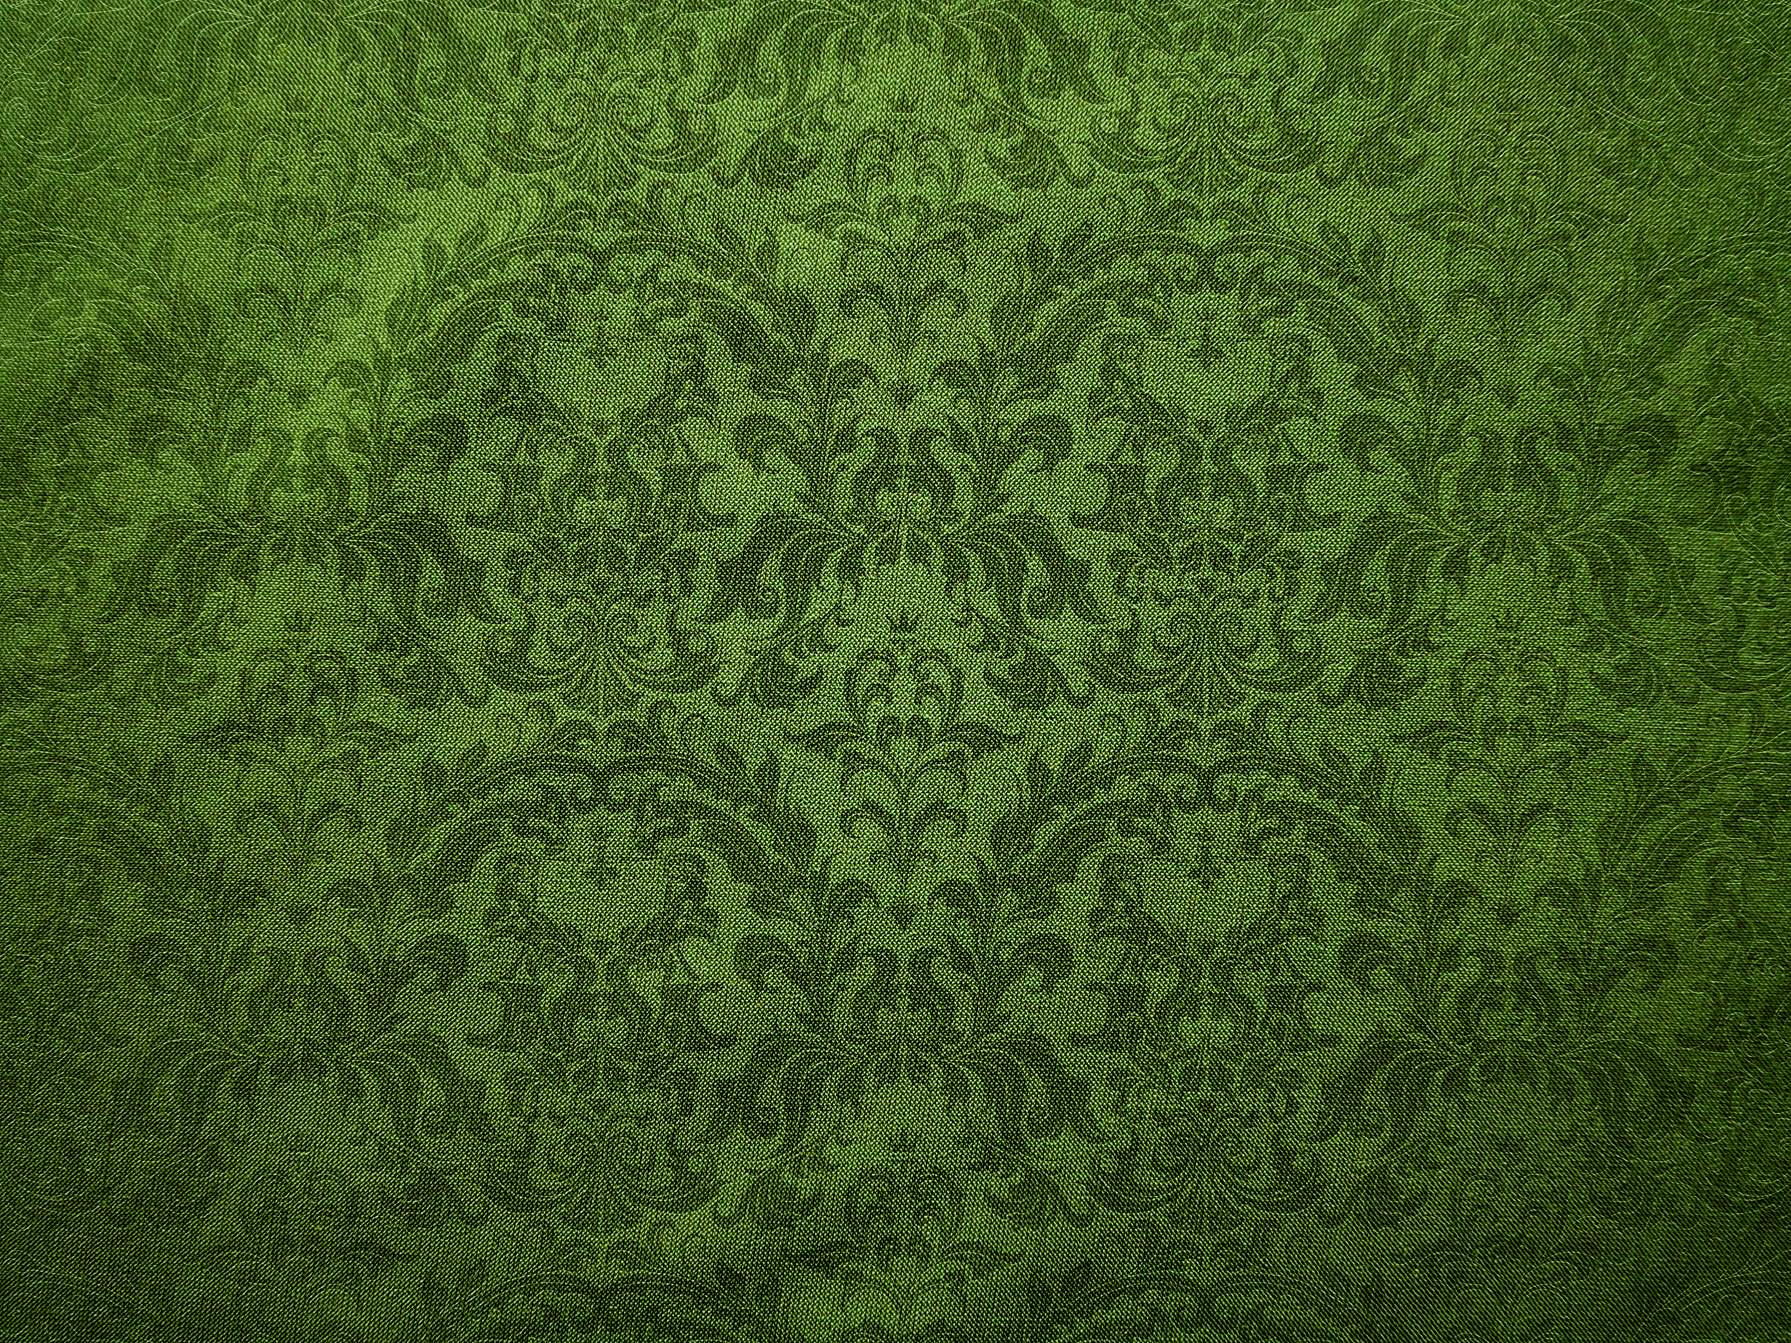 Vintage Green Damask Floral Pattern Canvas Background